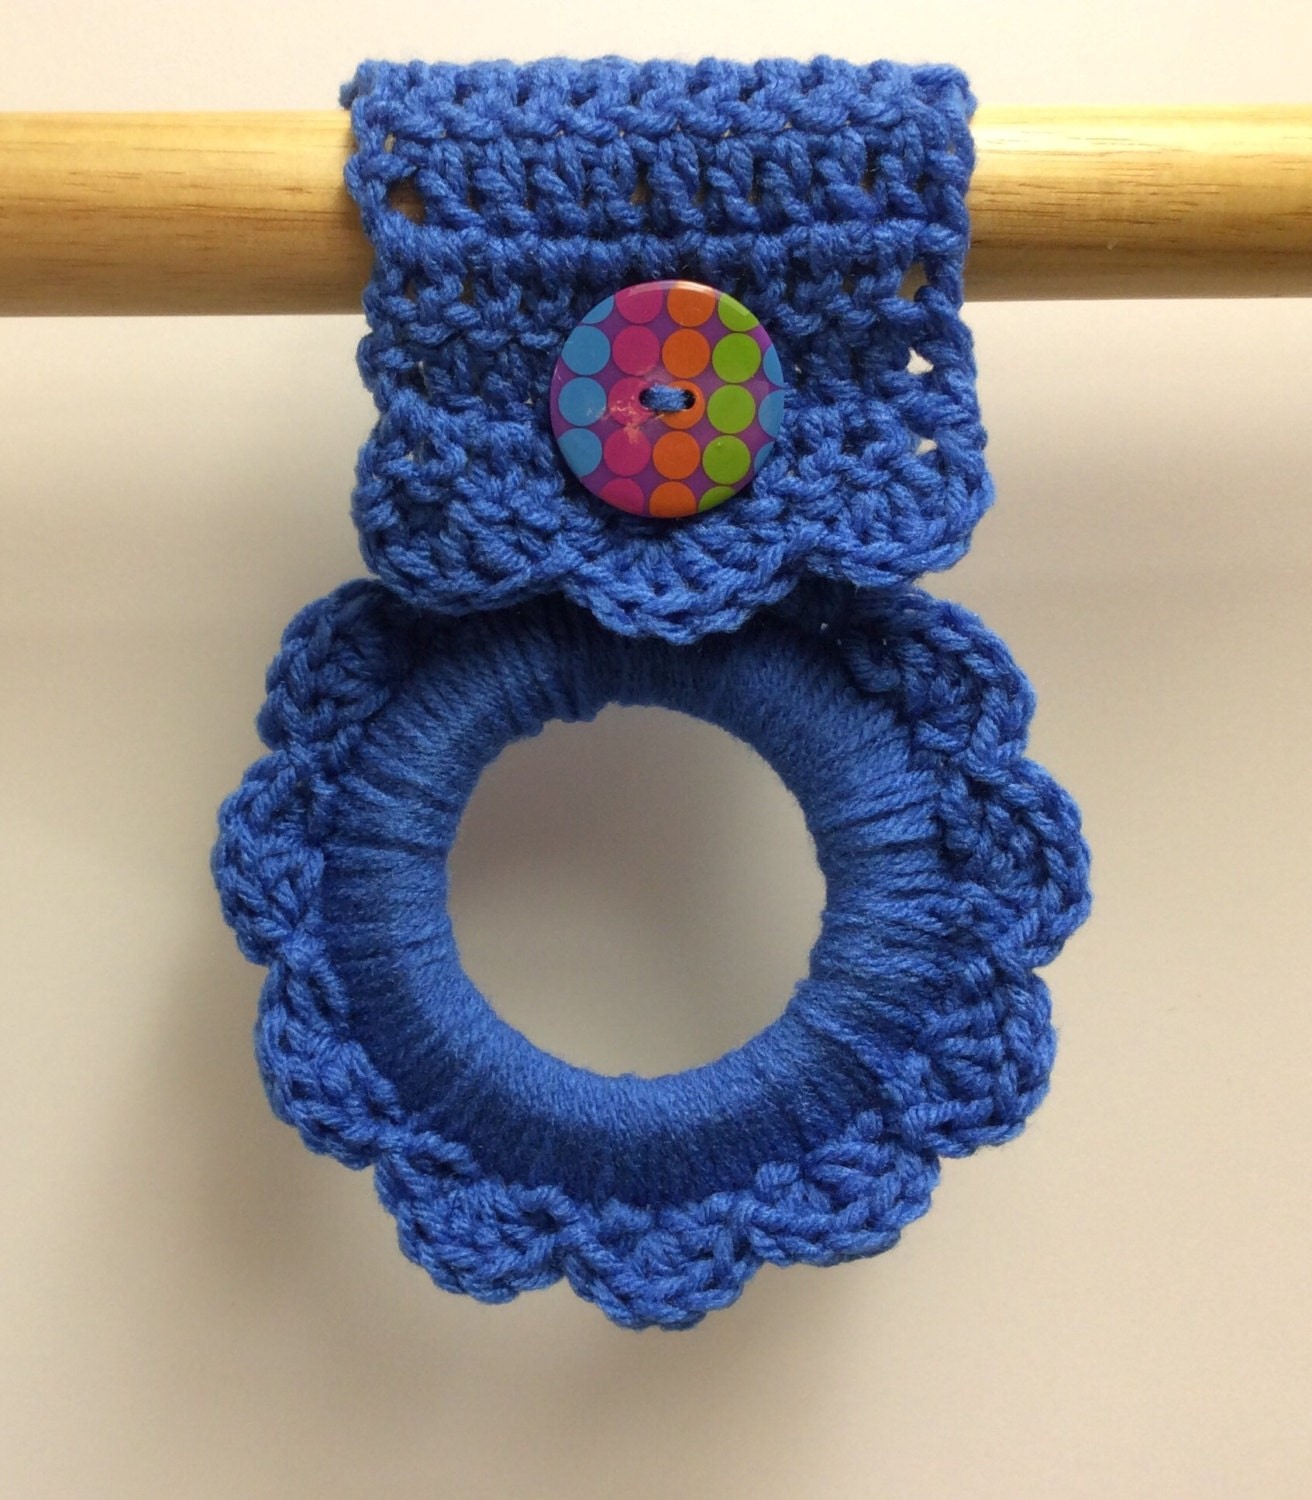 Crochet Kitchen Towel : Blue kitchen towel hanger crochet towel by Yarnhotoffthehook